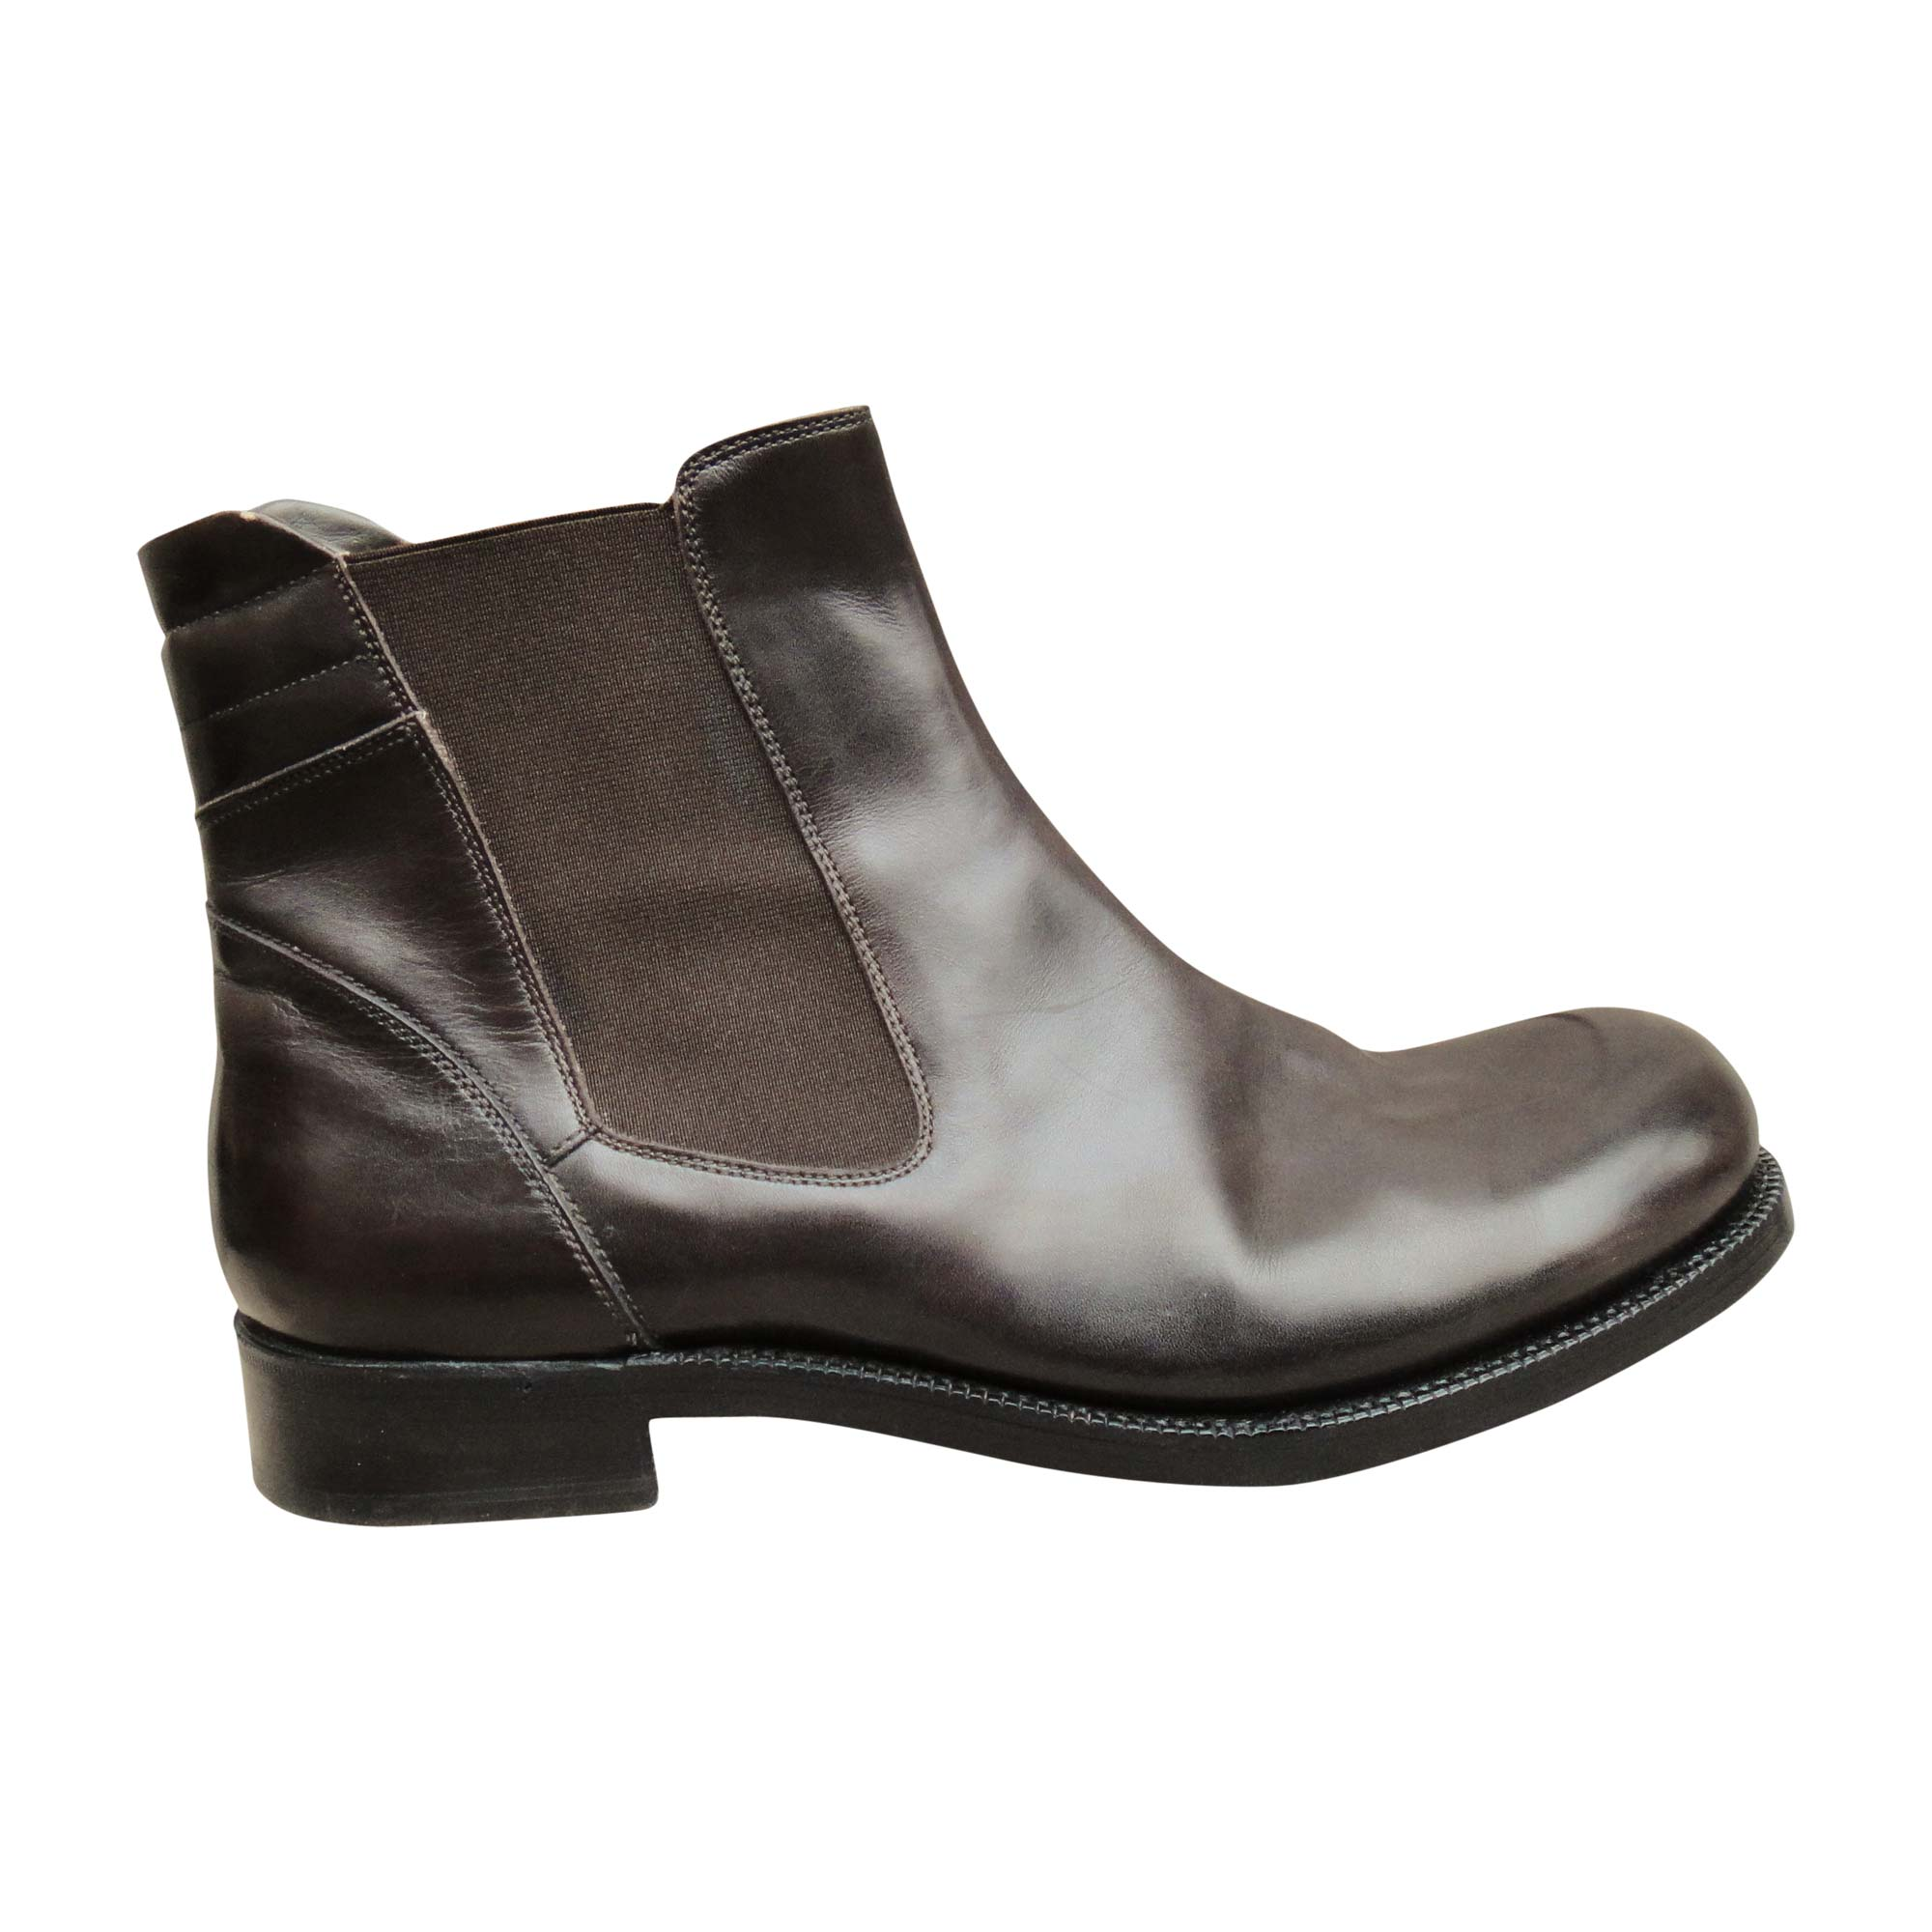 Clergerie Robert Clergerie Bottines Bottines Clergerie Robert Bottines Robert Bottines yPm8wOvn0N